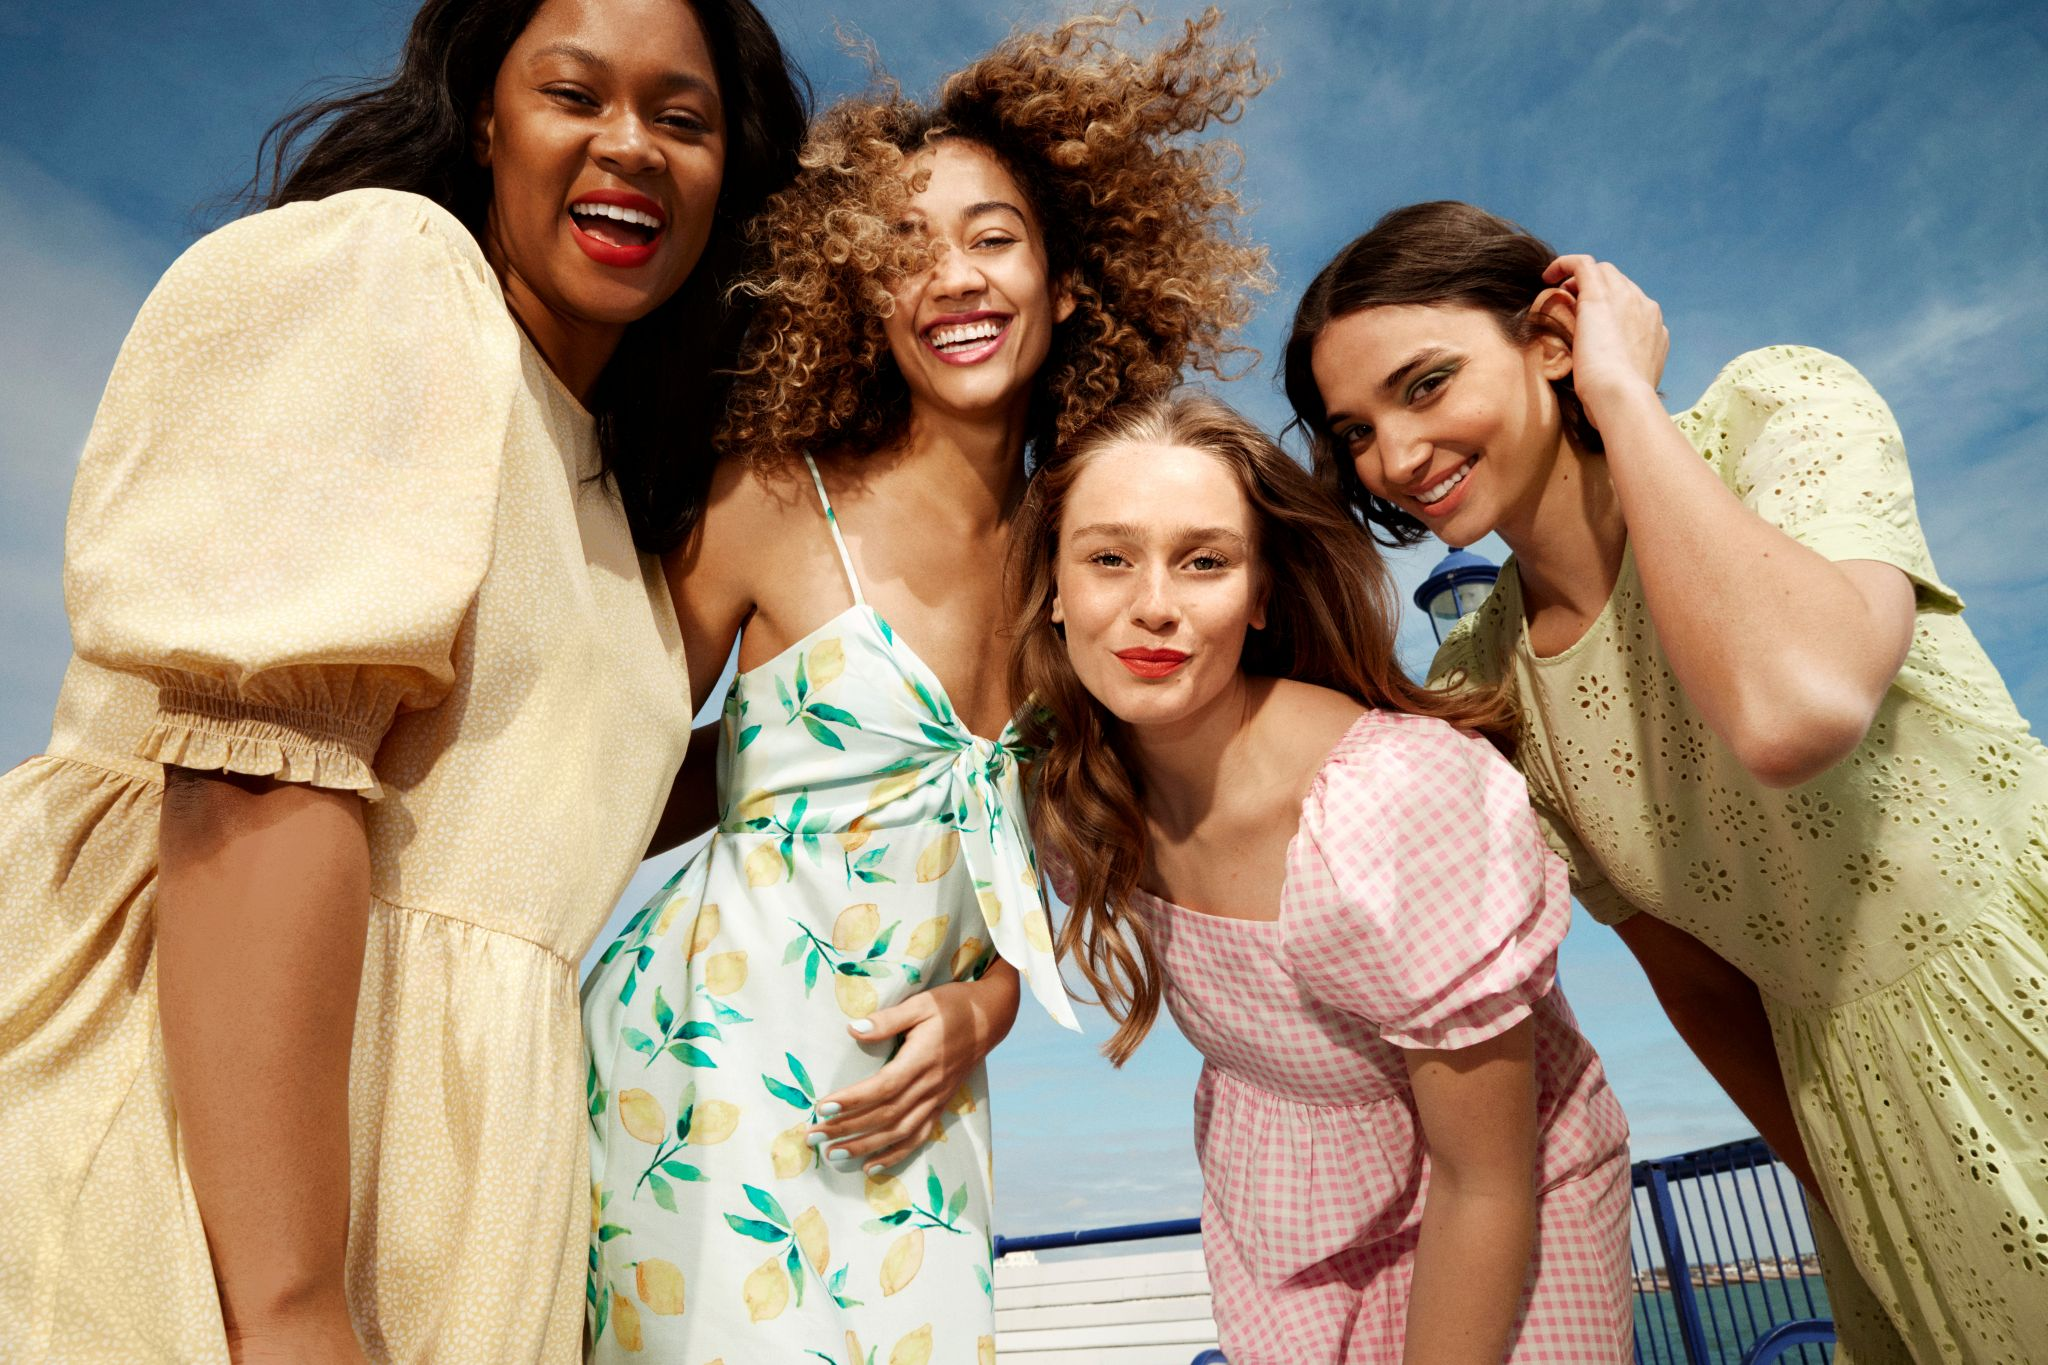 4 woman wearing dresses from New Look and smiling